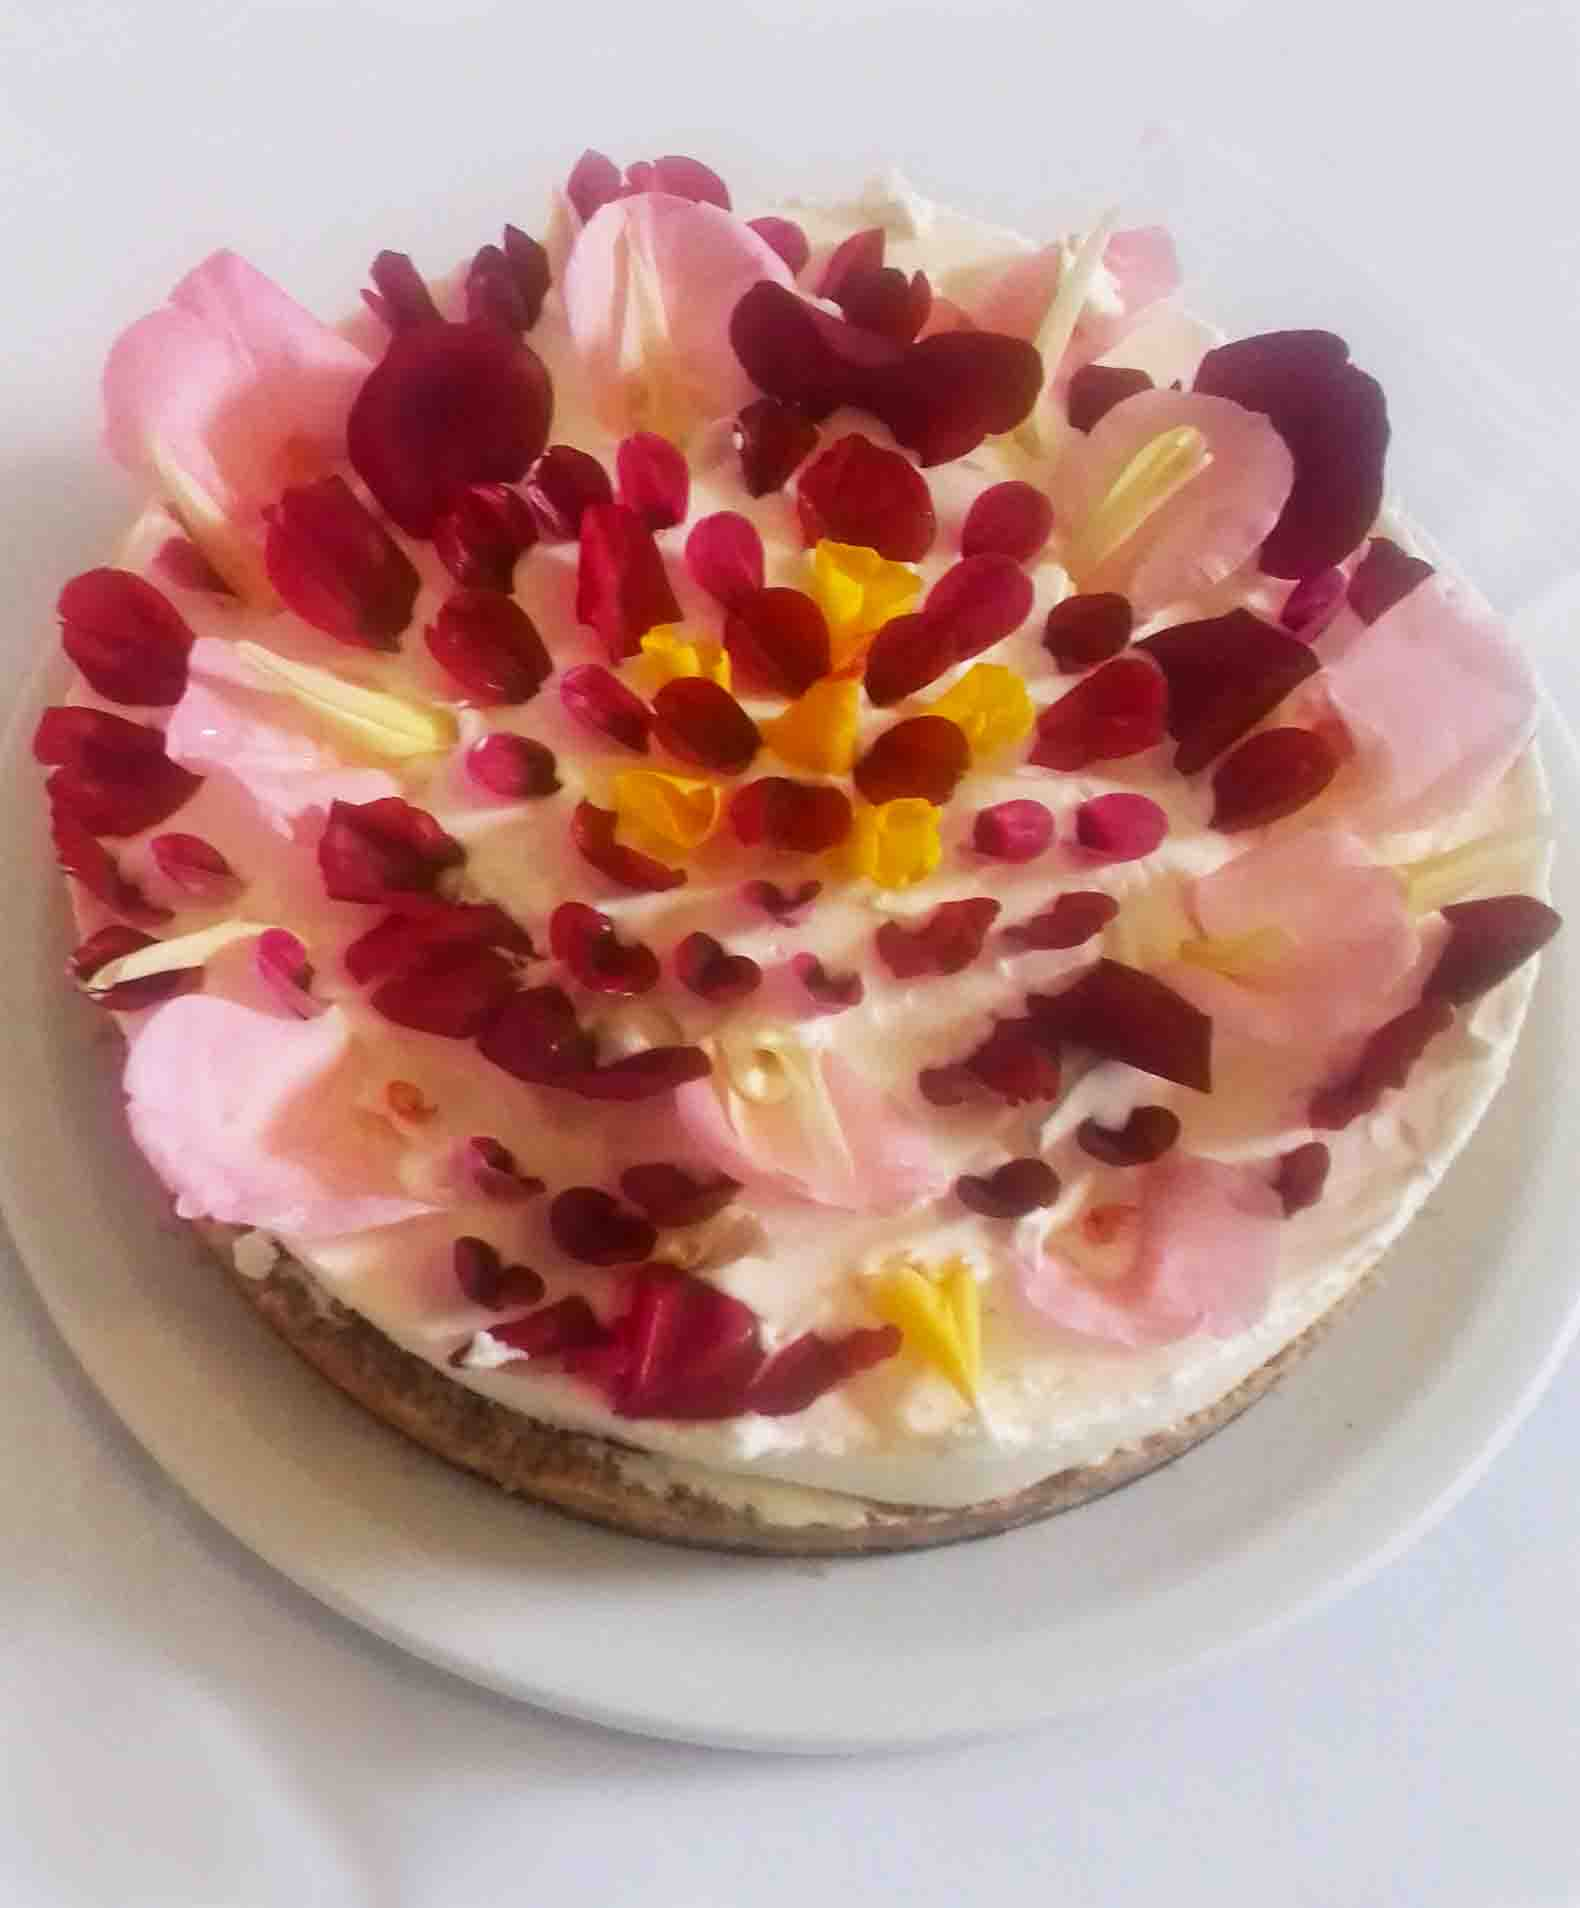 Meeting rooms with food - Cheesecake with edible flowers